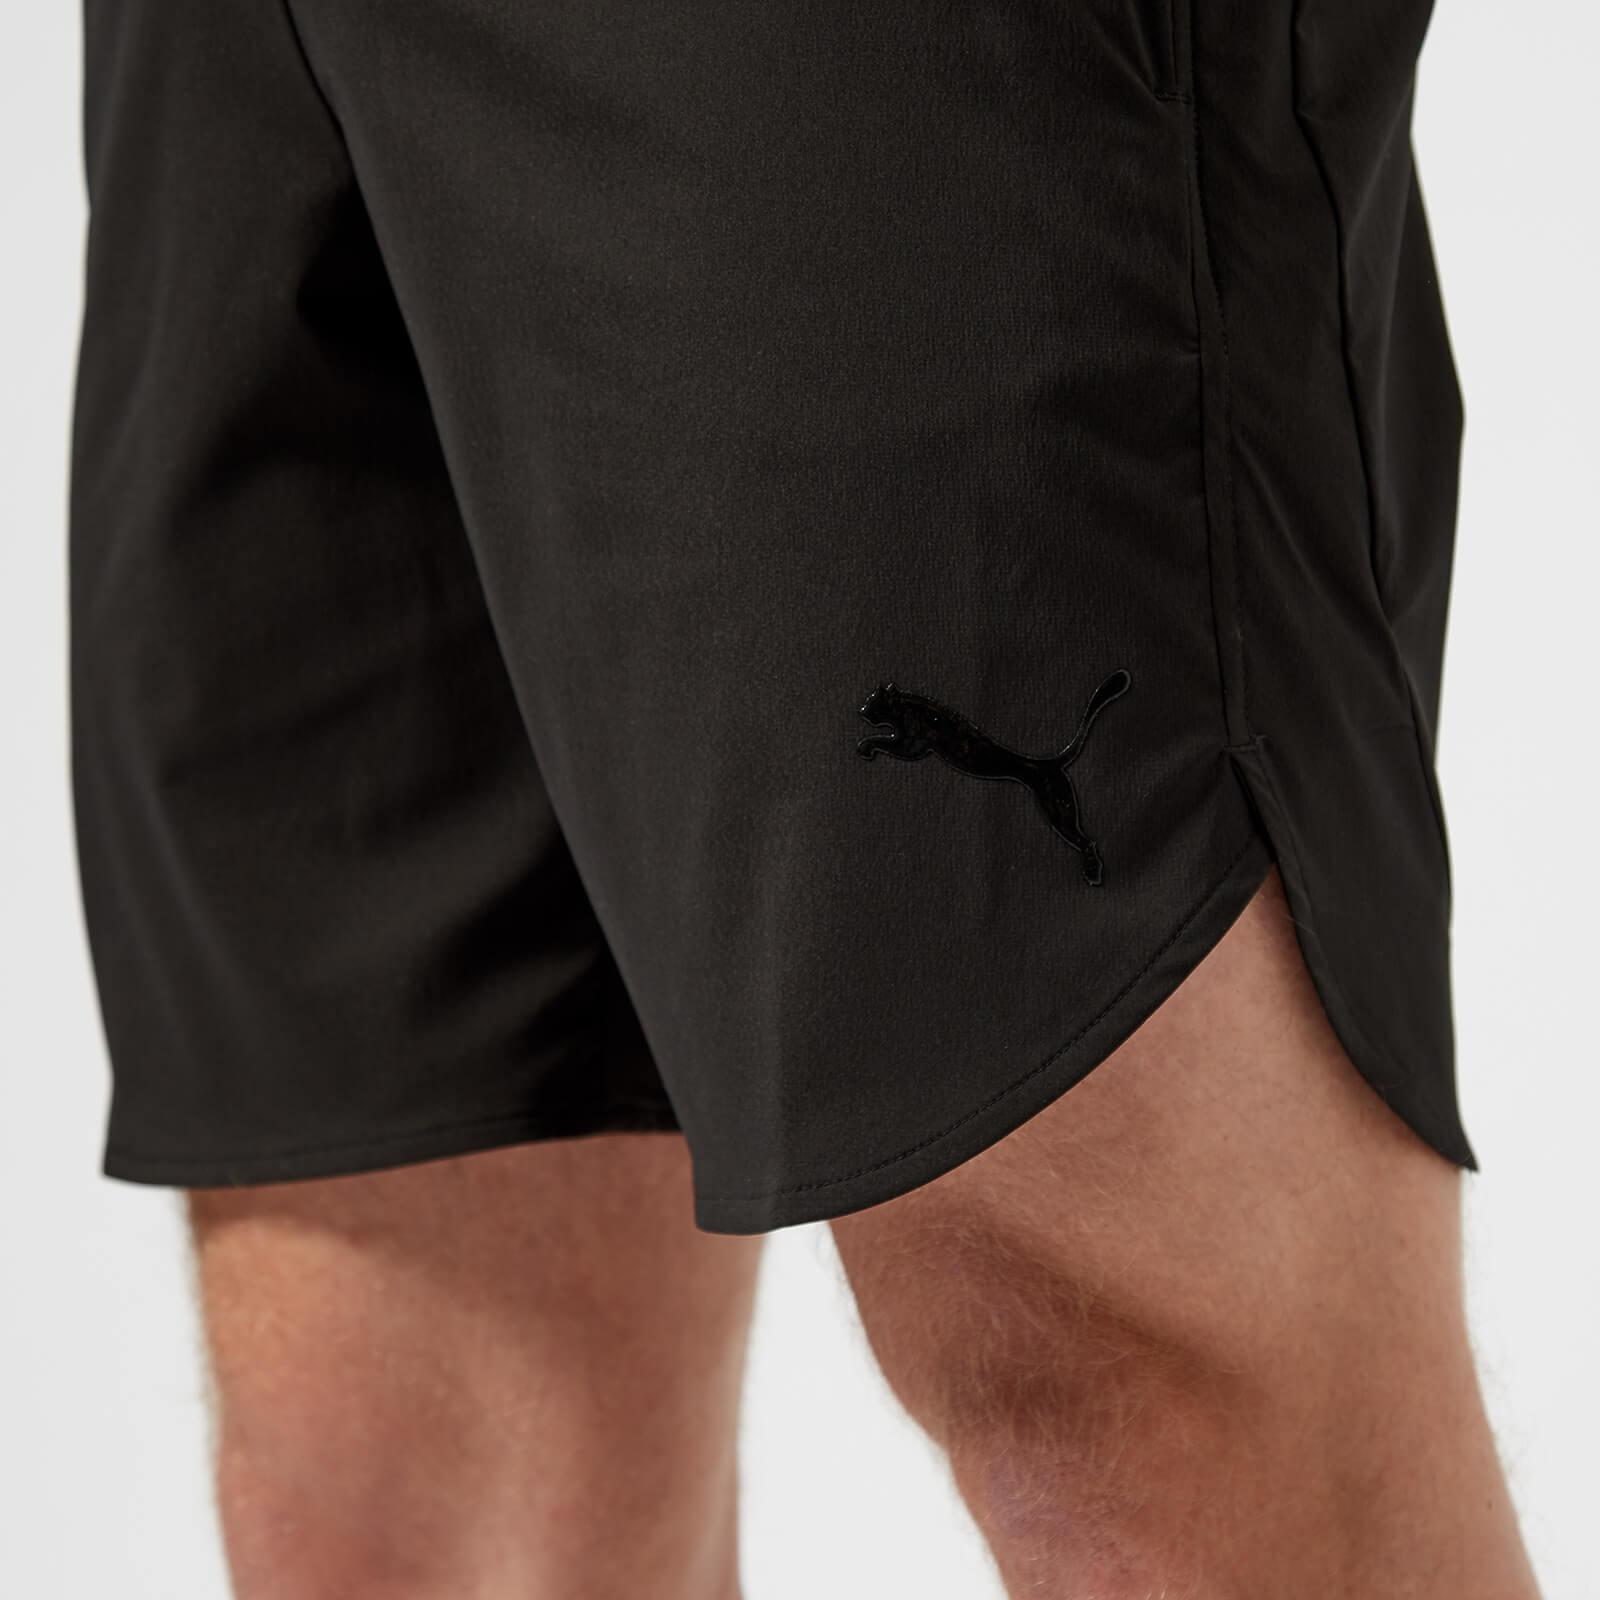 Men's Clothing Black Puma Evostripe Move Mens Training Shorts Clothing, Shoes & Accessories